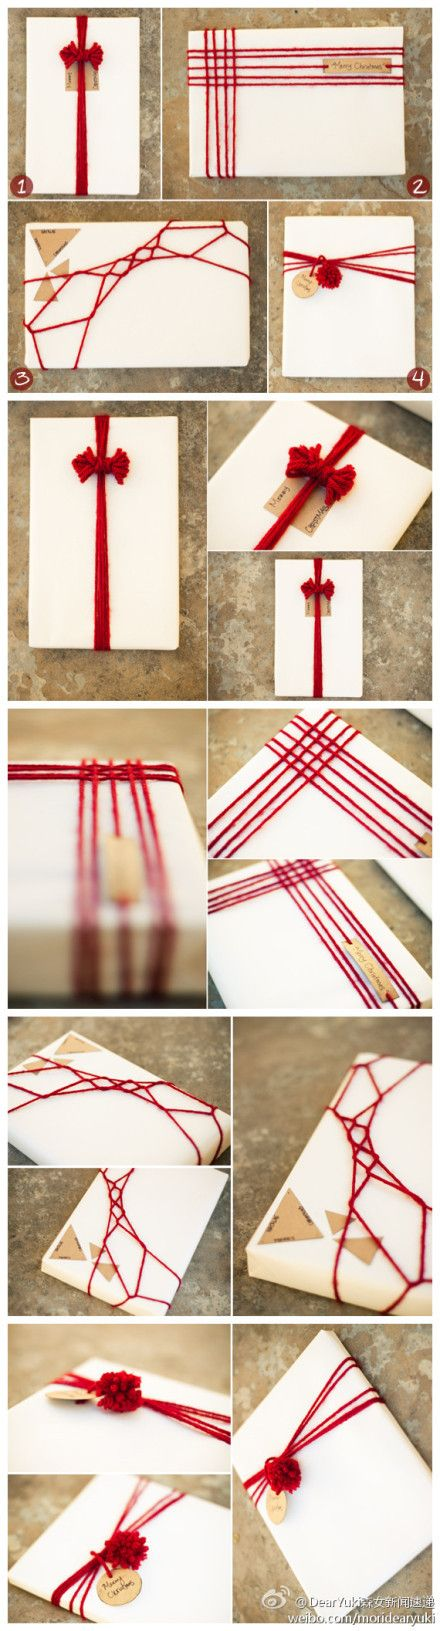 creative yarn wrapping. love the red and white